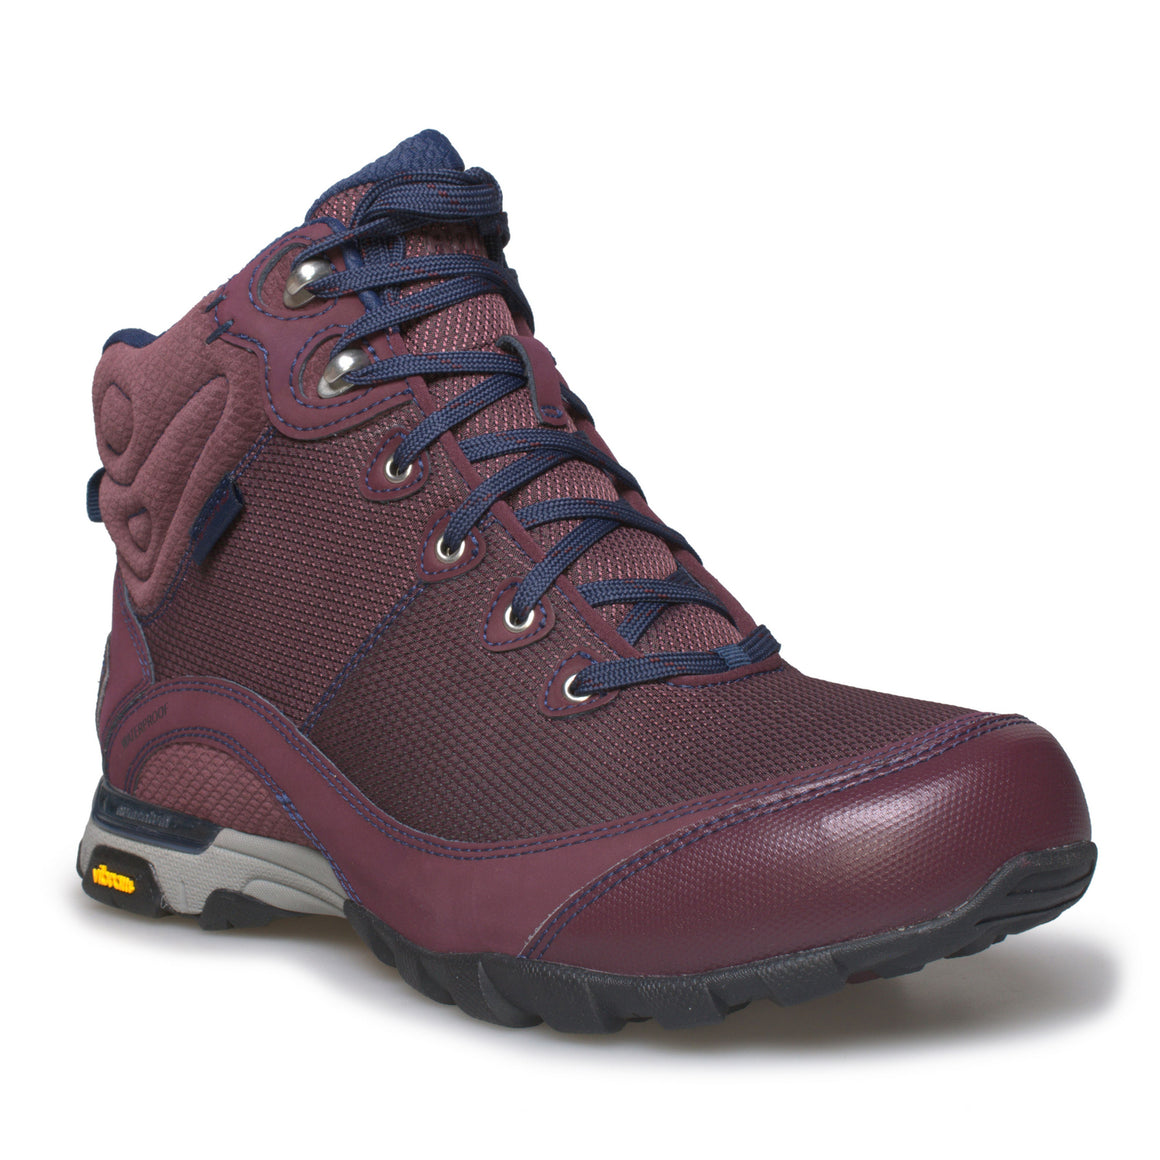 Ahnu Sugarpine II WP Ripstop Vineyard Wine Boots - Women's